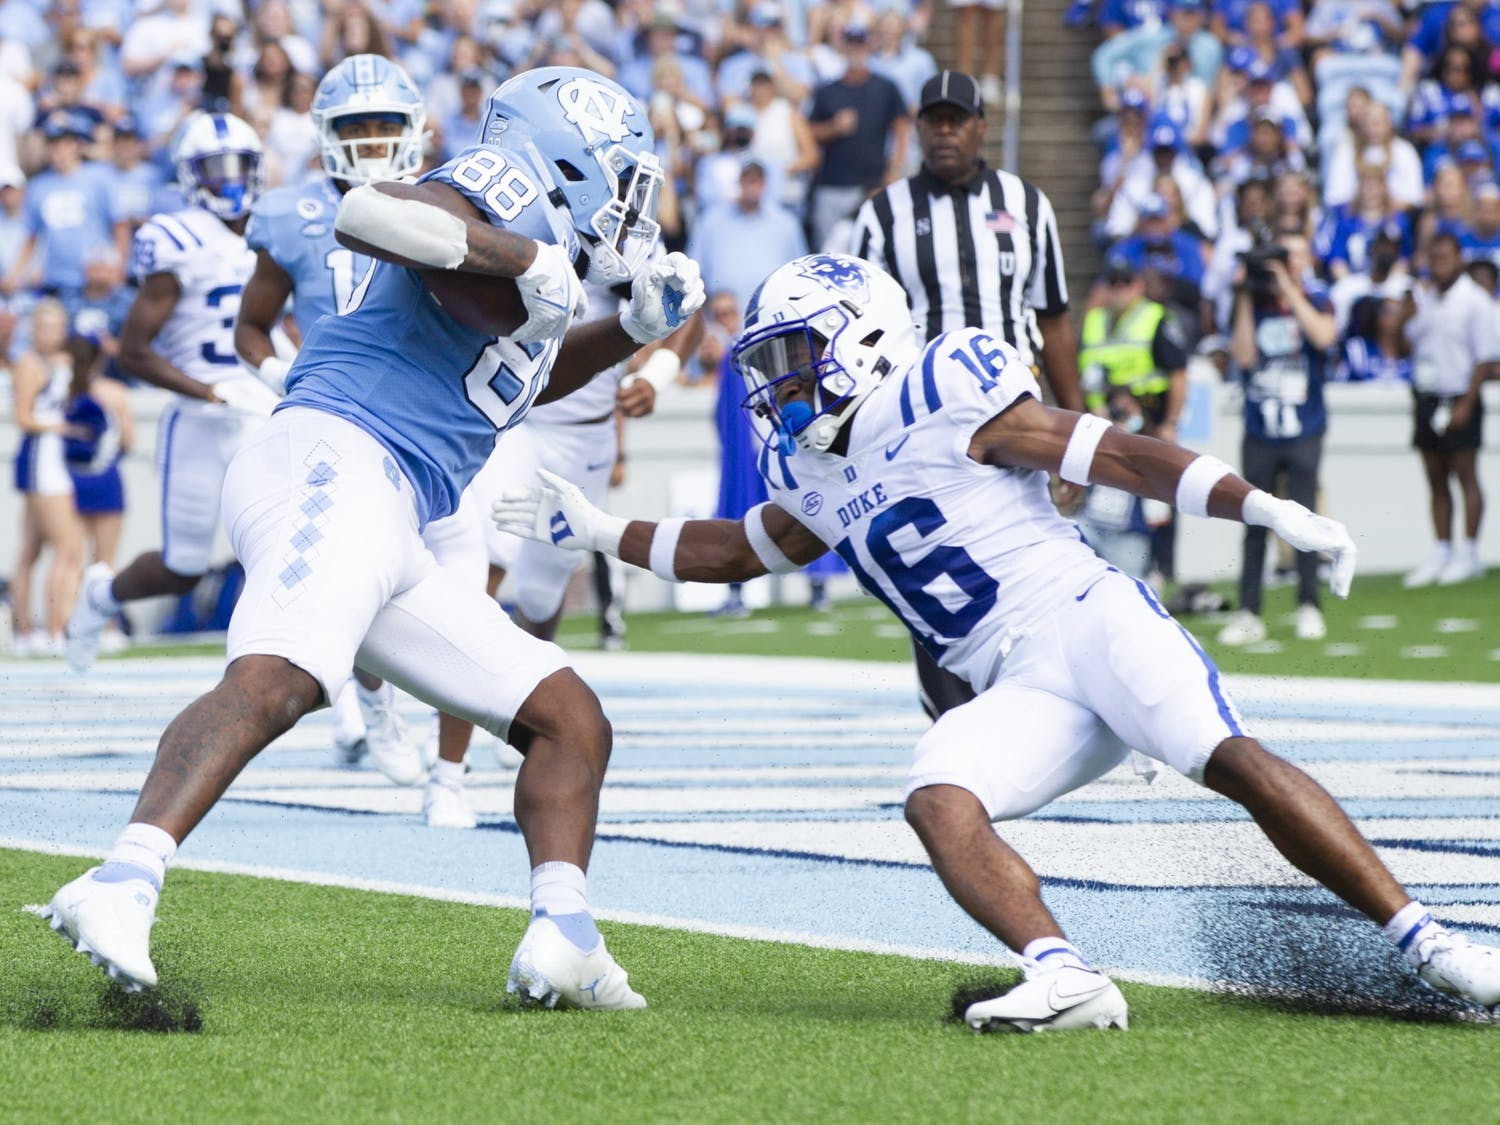 Sophomore tight end Kamari Morales (88) approaches the end zone moments before scoring a touchdown in the game against Duke at Kenan Memorial Stadium on Oct. 2, 2021.